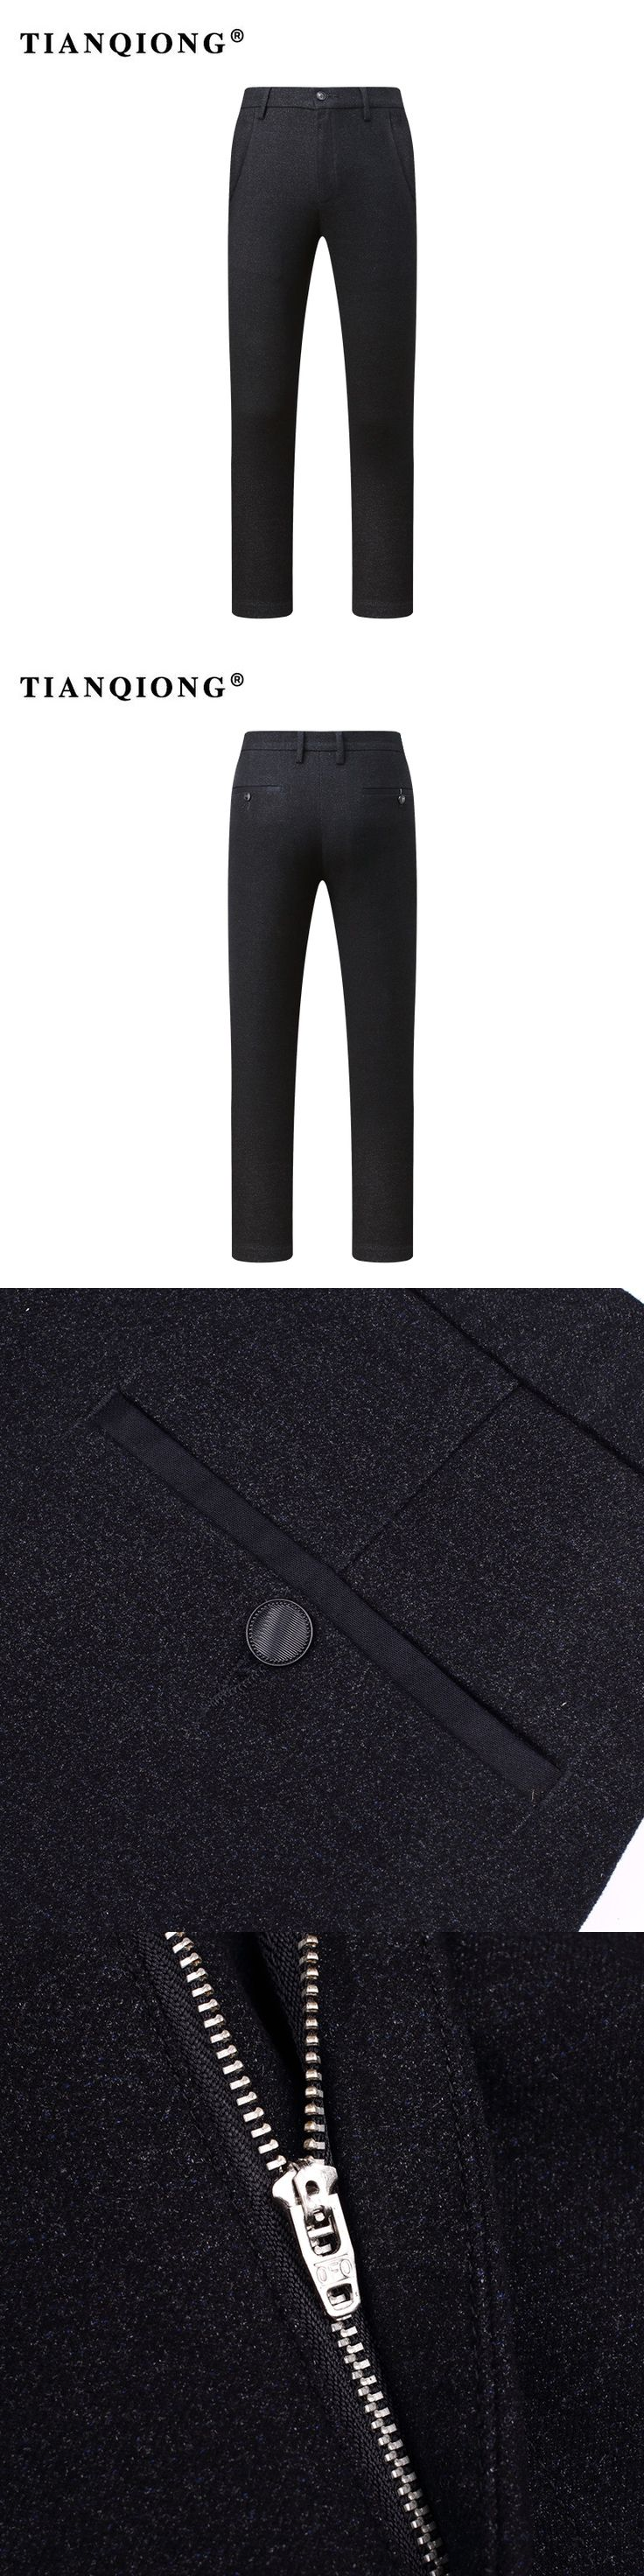 TIANQIONG Classic New Men's Micro Elastic Casual Pants Mens Business Dress Slim fit Stretch Long Trouser Male Black High Quality